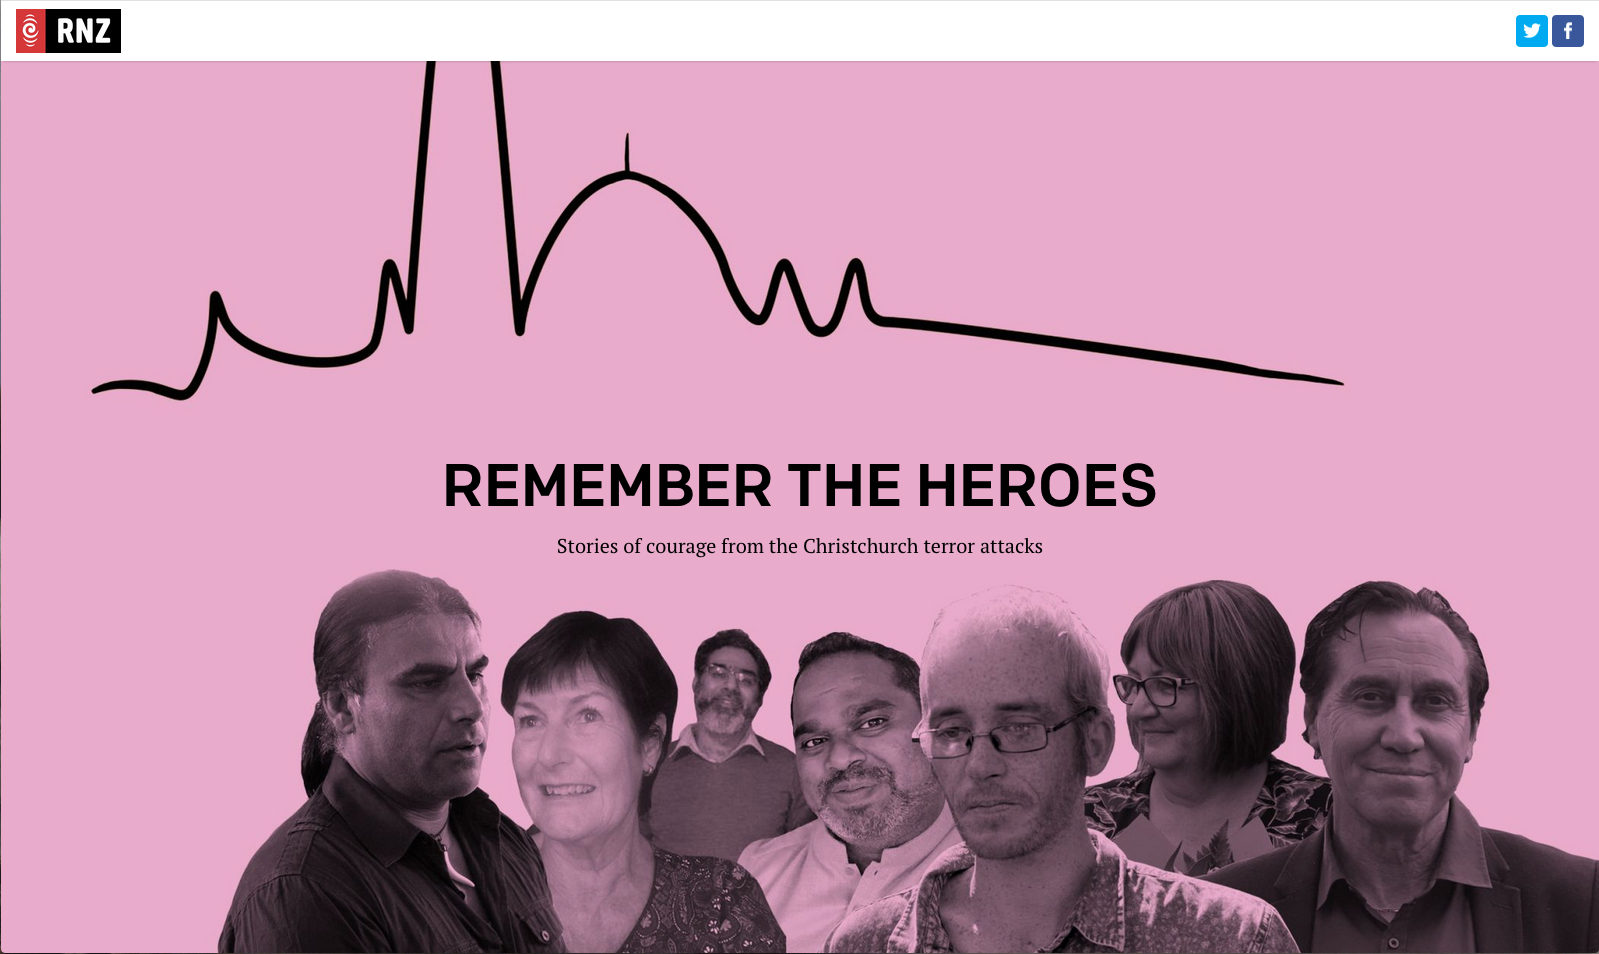 Graphic design and photo-illustration for RNZ's longform article acknowledging those who helped so many during the terror attacks in Christchurch.  Follow this link to the full article:  http://shorthand.radionz.co.nz/remember-the-heroes/index.html